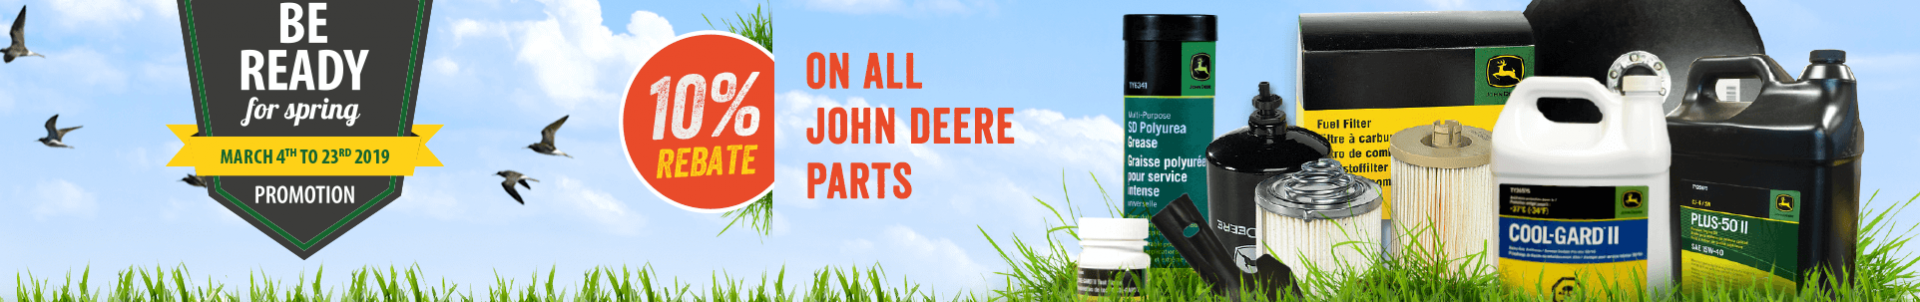 big-promotion-parts-john-deere